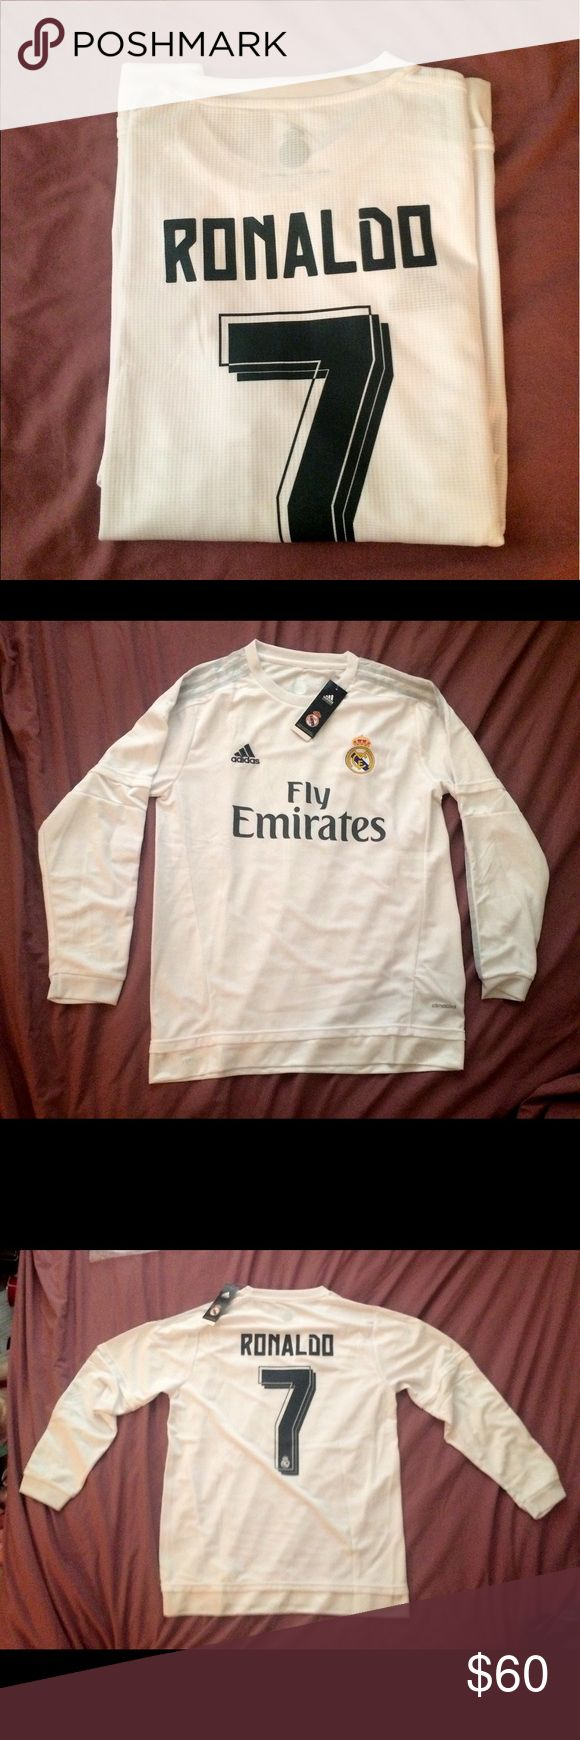 NWT Real Madrid Ronaldo Soccer Jersey Adult Large Brand New 2015-2016 Real Madrid Cristiano Ronaldo Long Sleeve Soccer Jersey. Men's Adult Large. NWT adidas Shirts